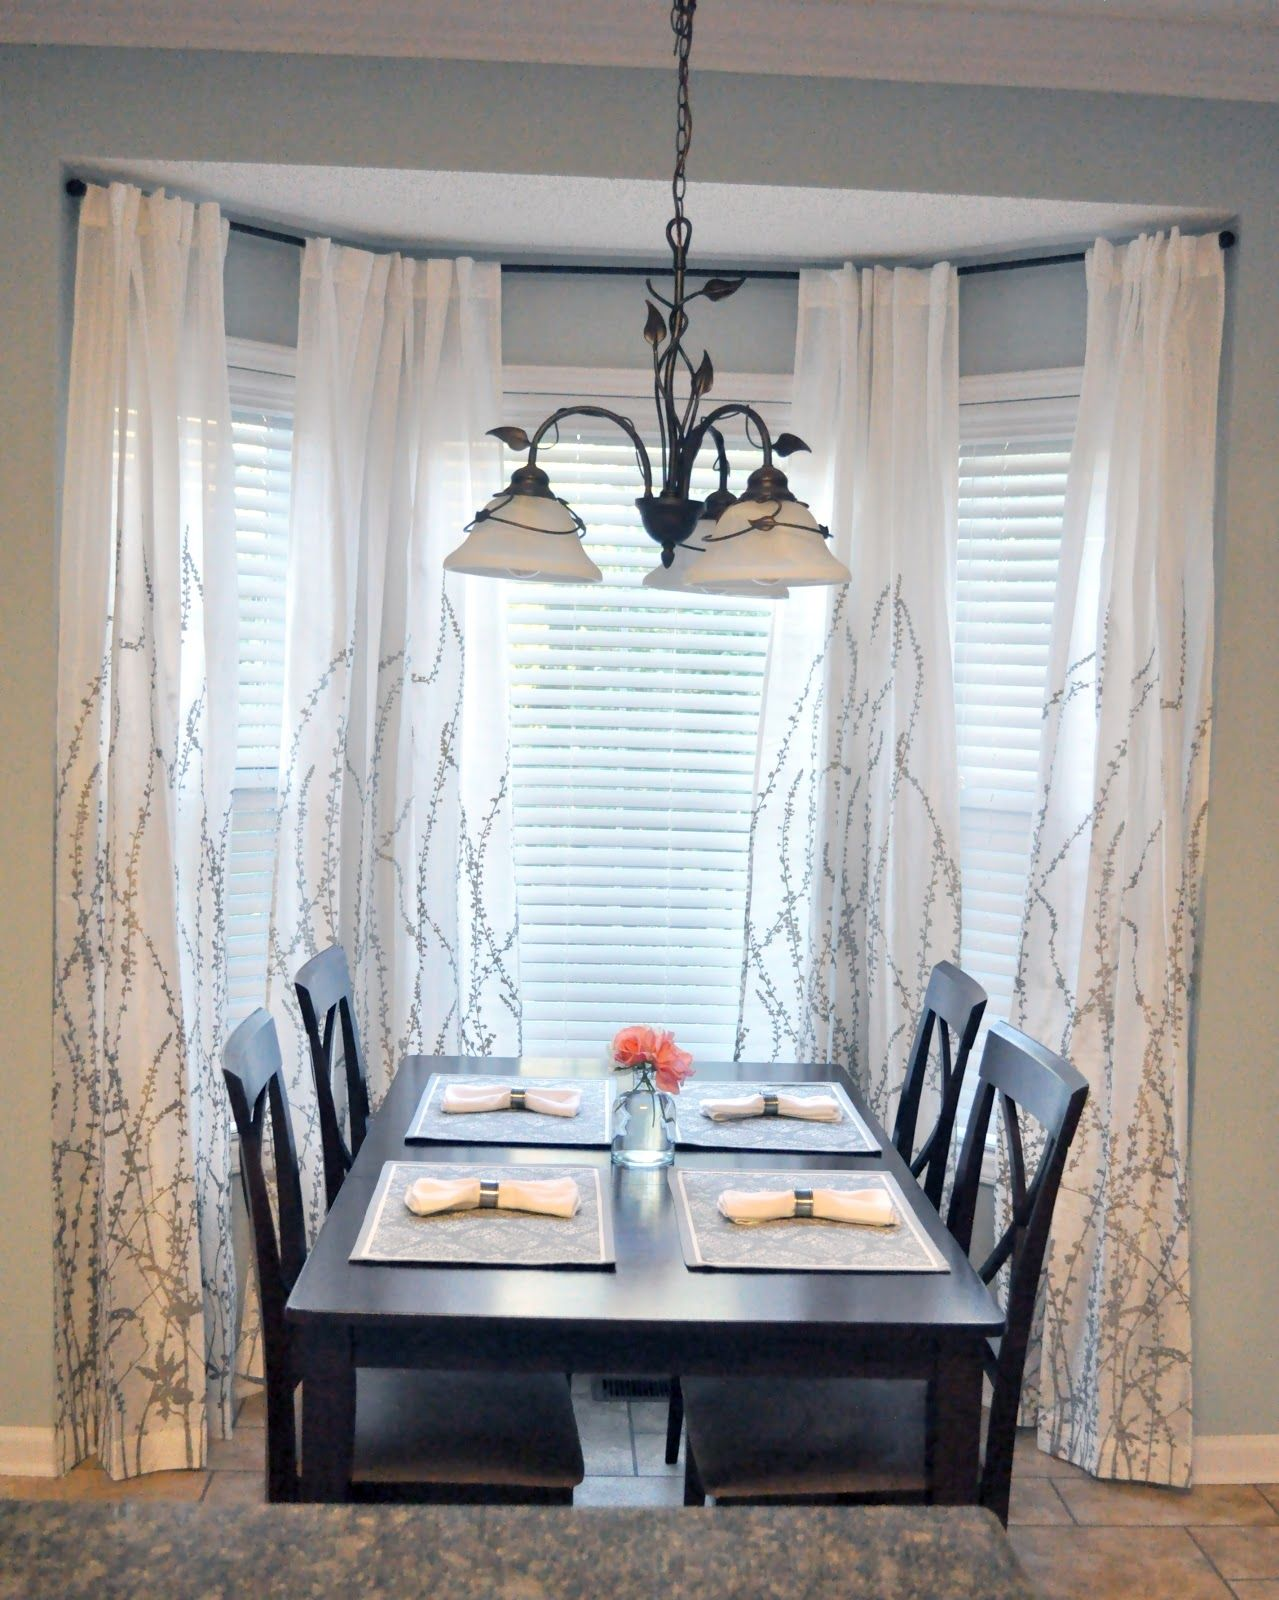 October 2012 Dining Room Window Treatments Dining Room Windows Window Treatments Living Room